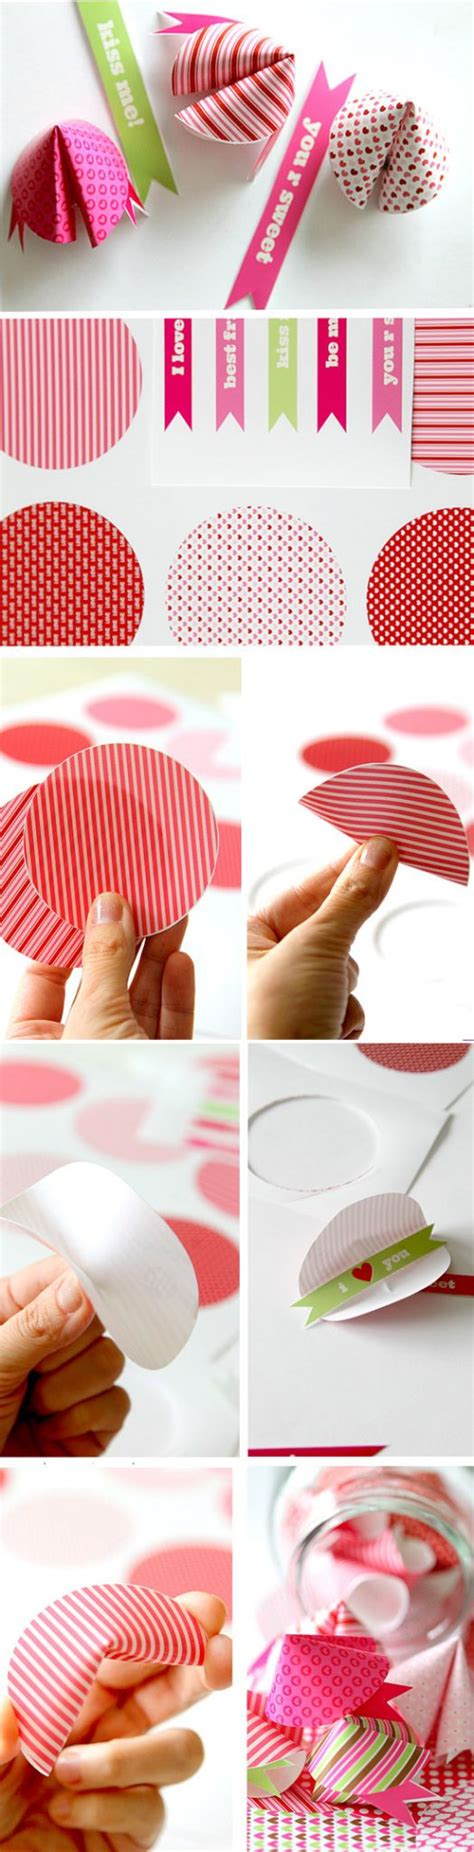 Valentines Day Gifts 2017 by 40 Diy Valentine S Day Gifts For Him For 2017